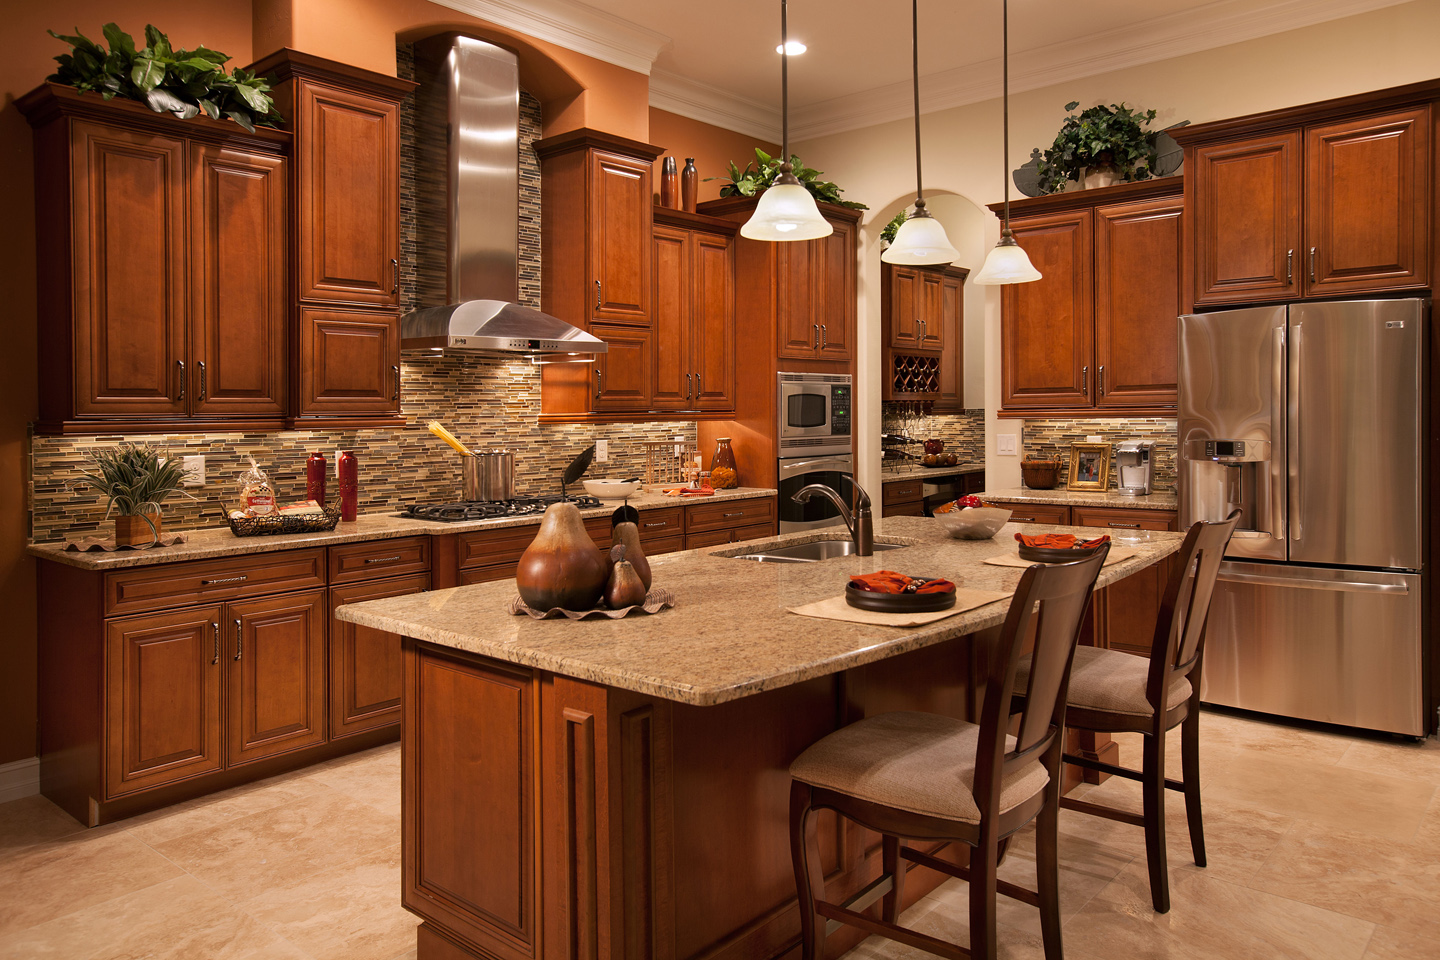 Kitchen model designs the best inspiration for interiors for Model kitchen images